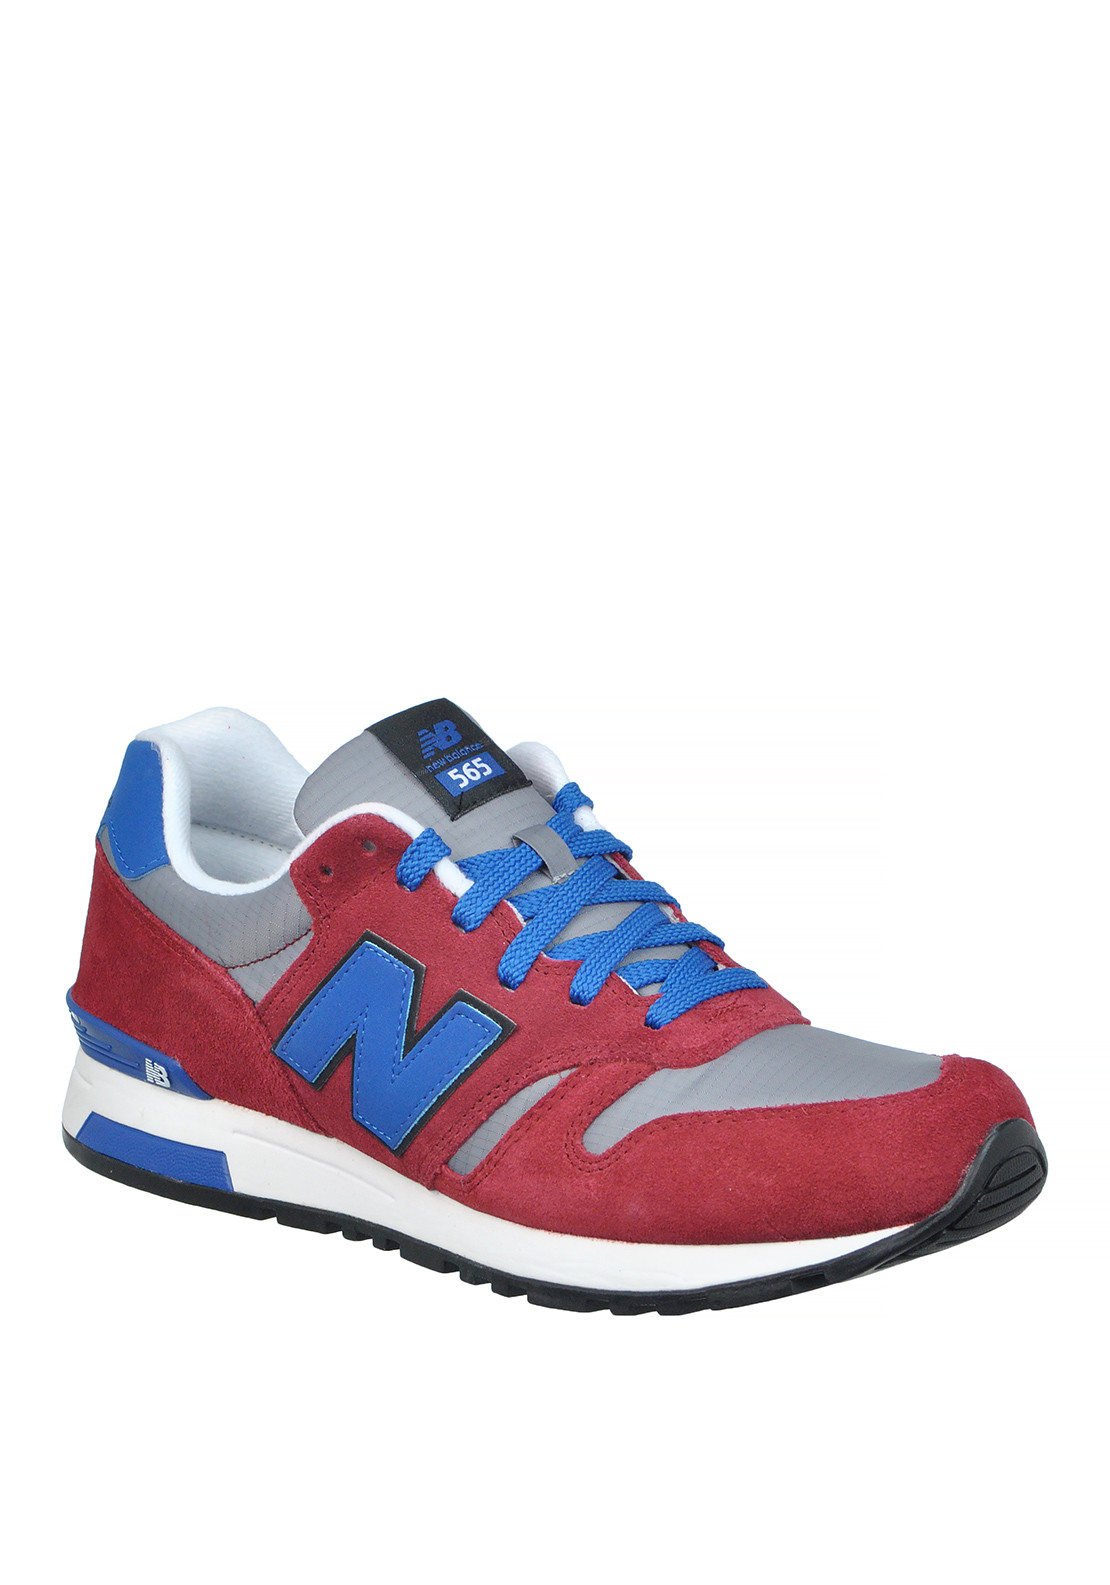 New Balance Mens 565 Fashion Runners, Wine